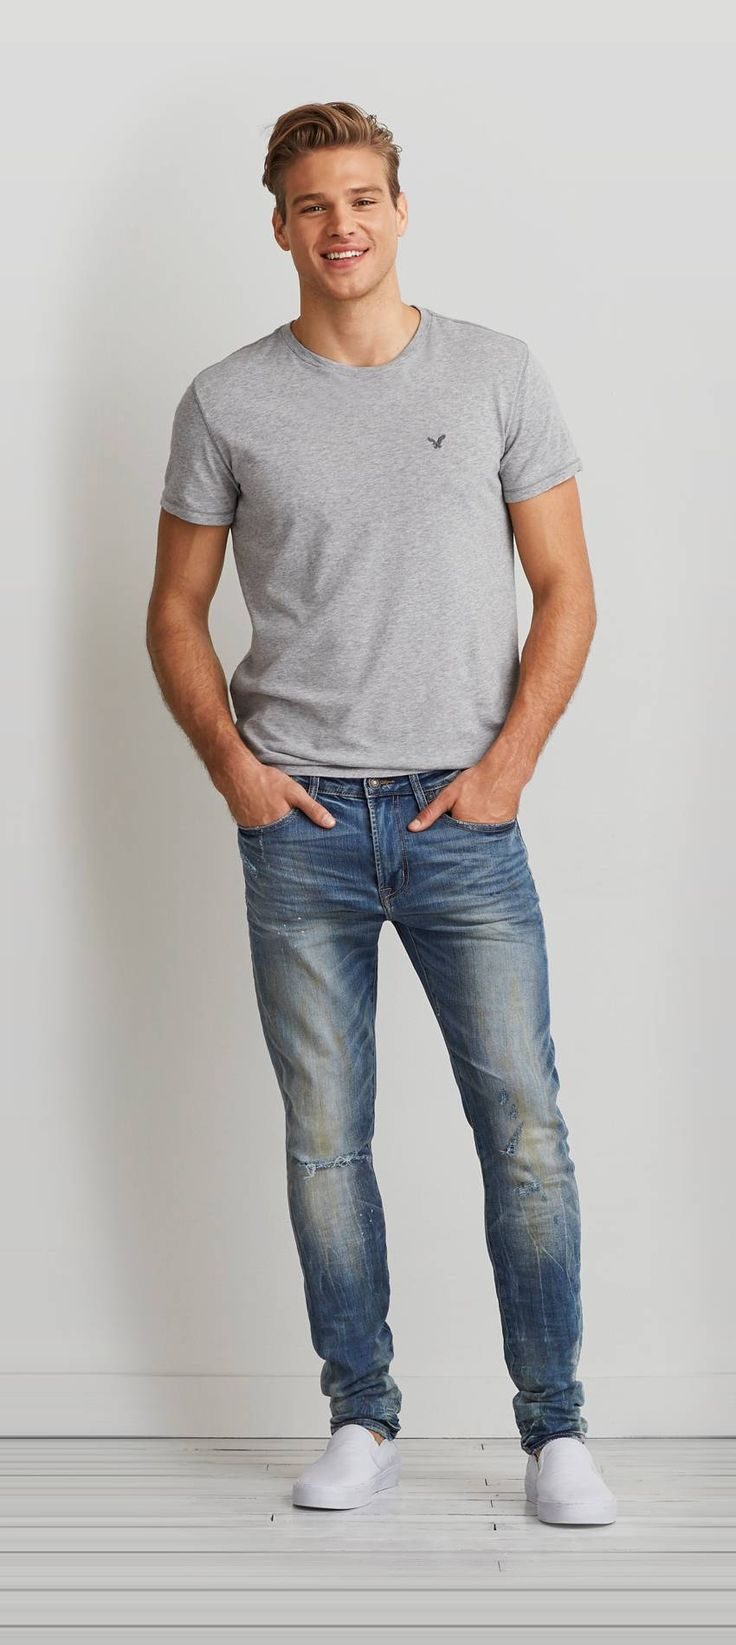 Black t shirt light blue jeans - Find Every Men S Jeans Fit And Wash You Ll Love From American Eagle